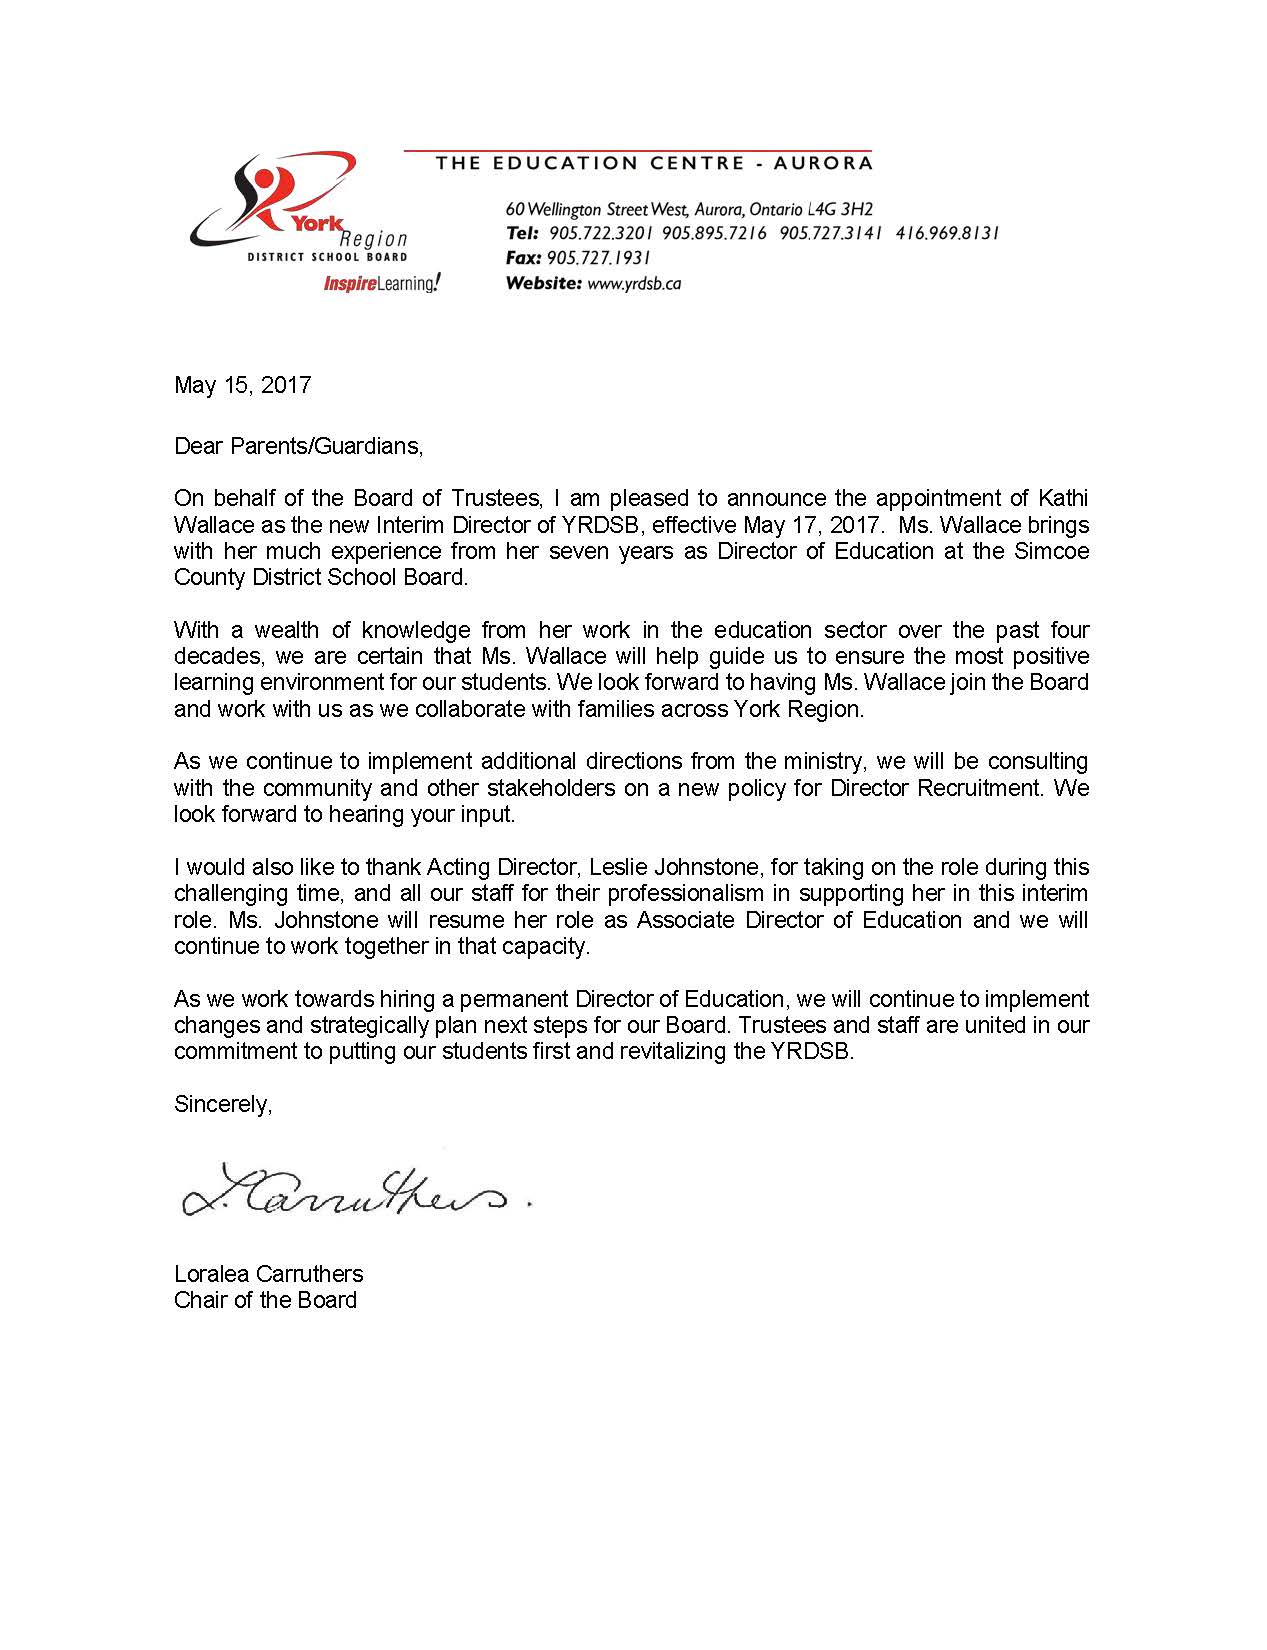 cover letter for yrdsb